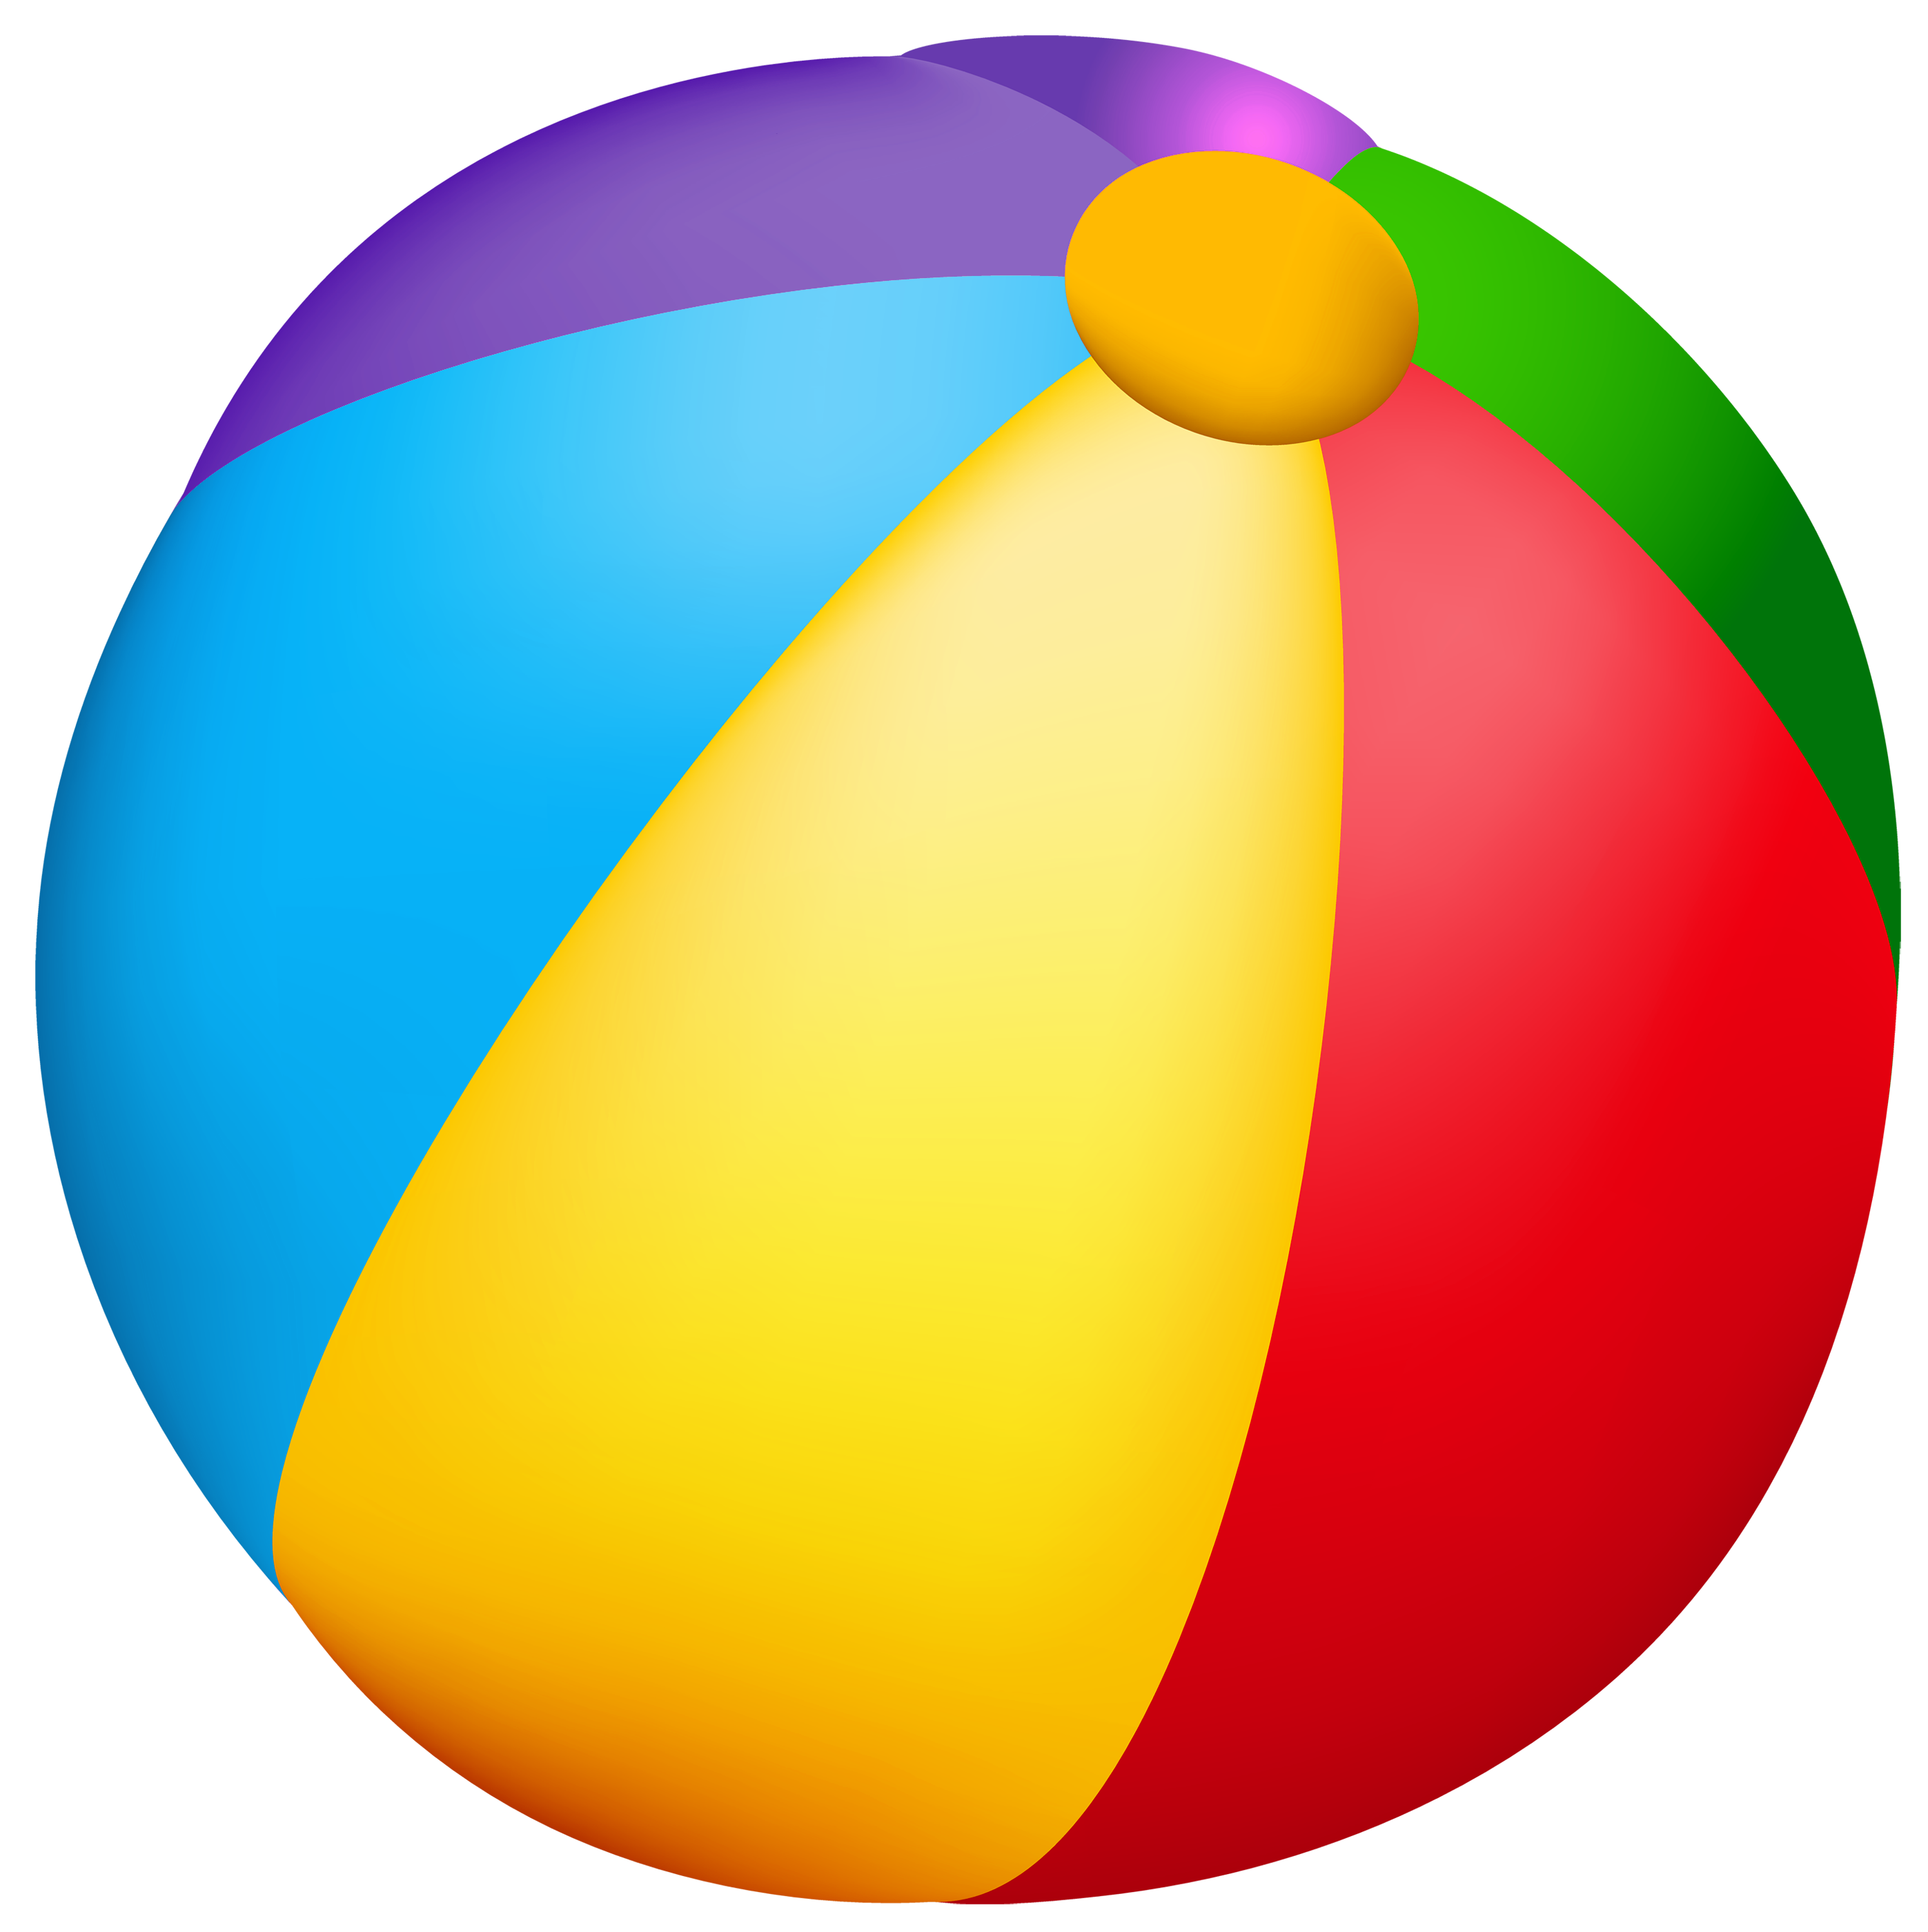 Dogs clipart ball. Beachball transparent background free